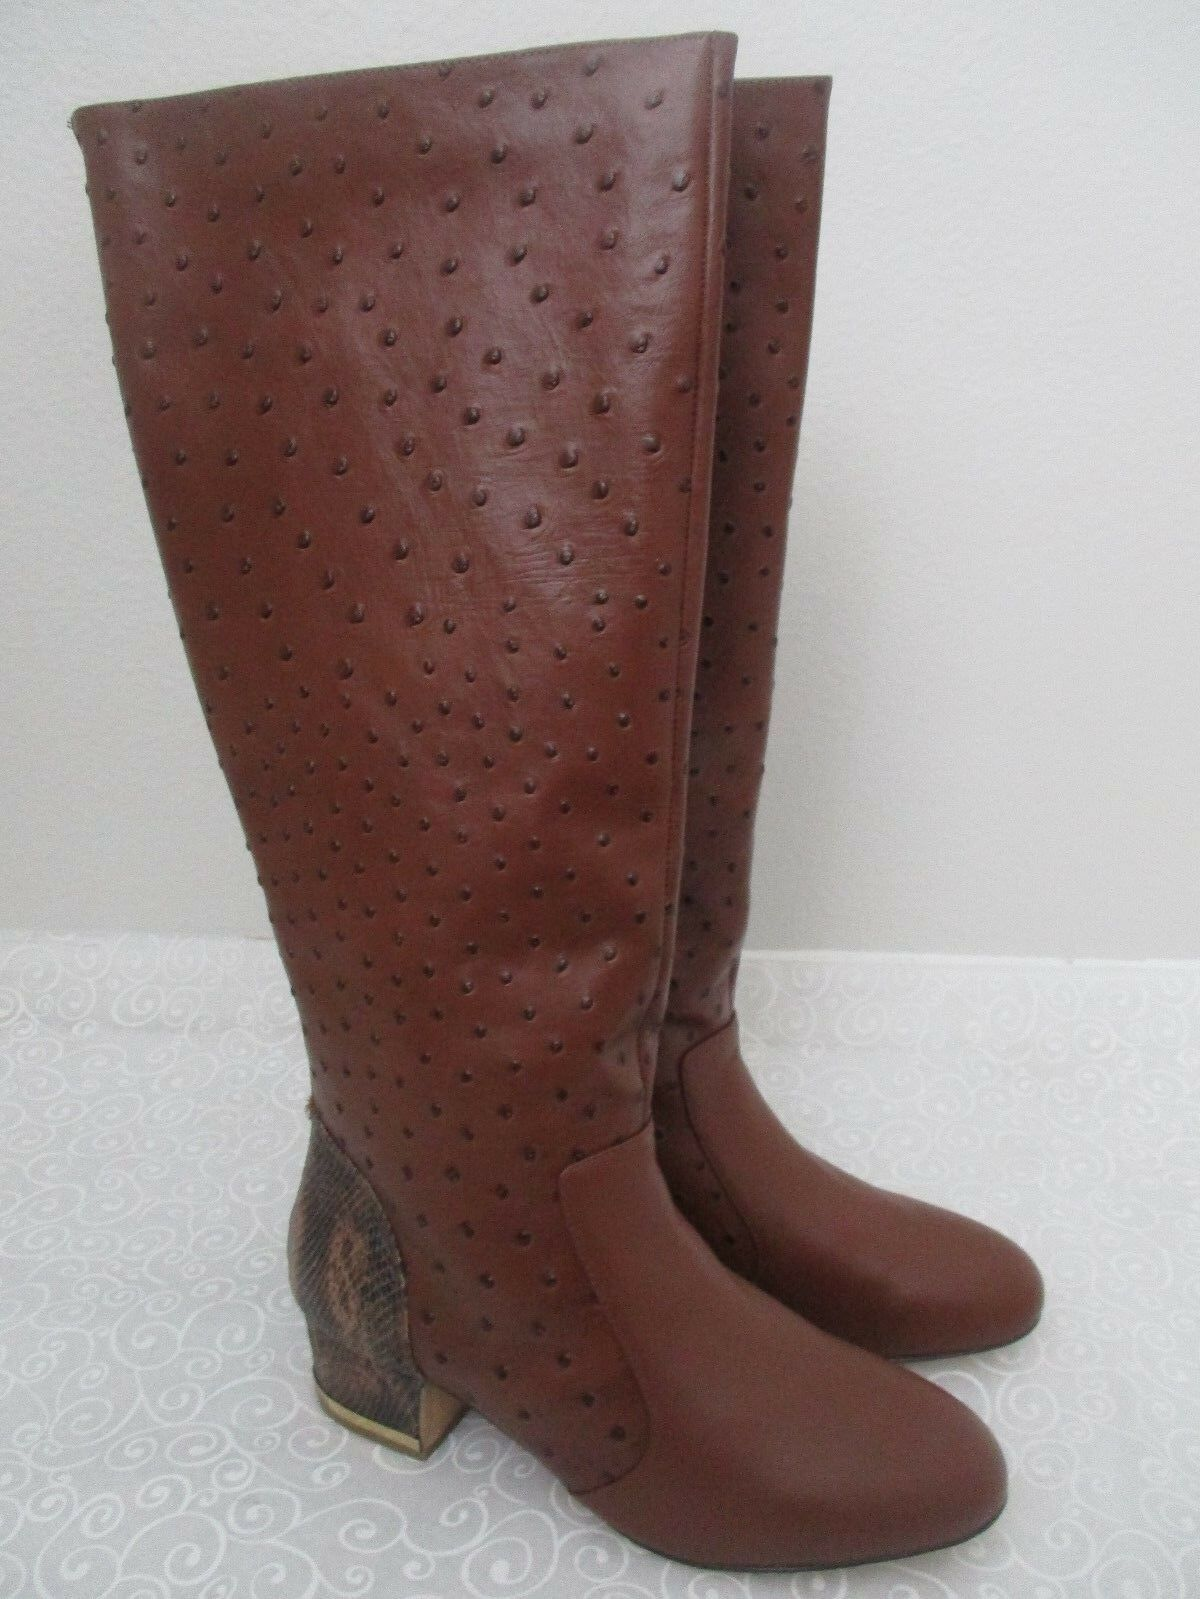 239 DEESIGNS BROWN OSTRICH LEATHER 12 KNEE HIGH Stiefel SIZE 12 LEATHER W - NEW cbf0d7